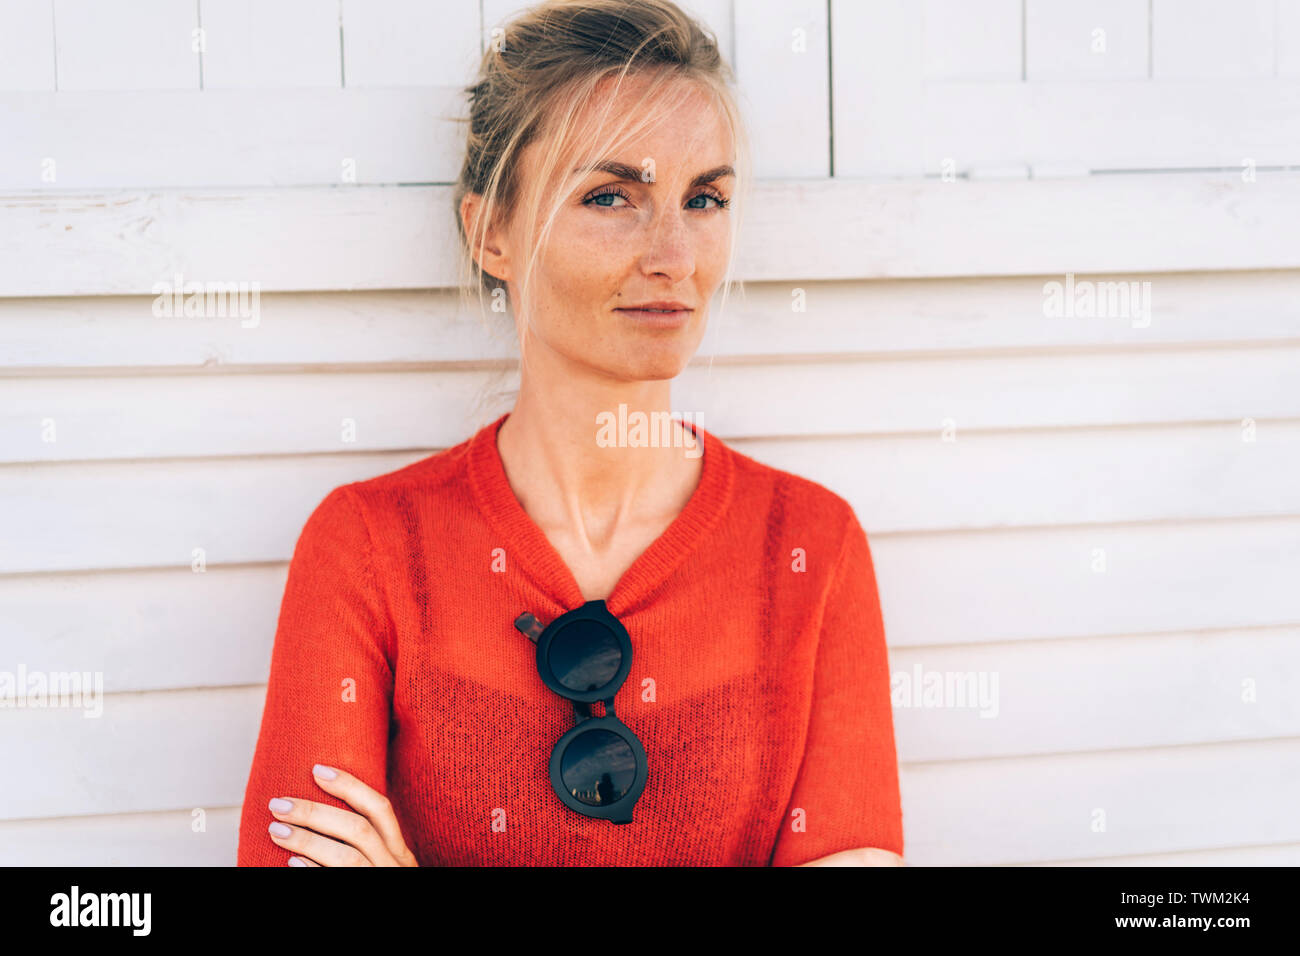 Natural beauty, authentic appearance, tanned blond woman with freckles on her face in a red sweater against the backdrop of a perfectly white planked - Stock Image